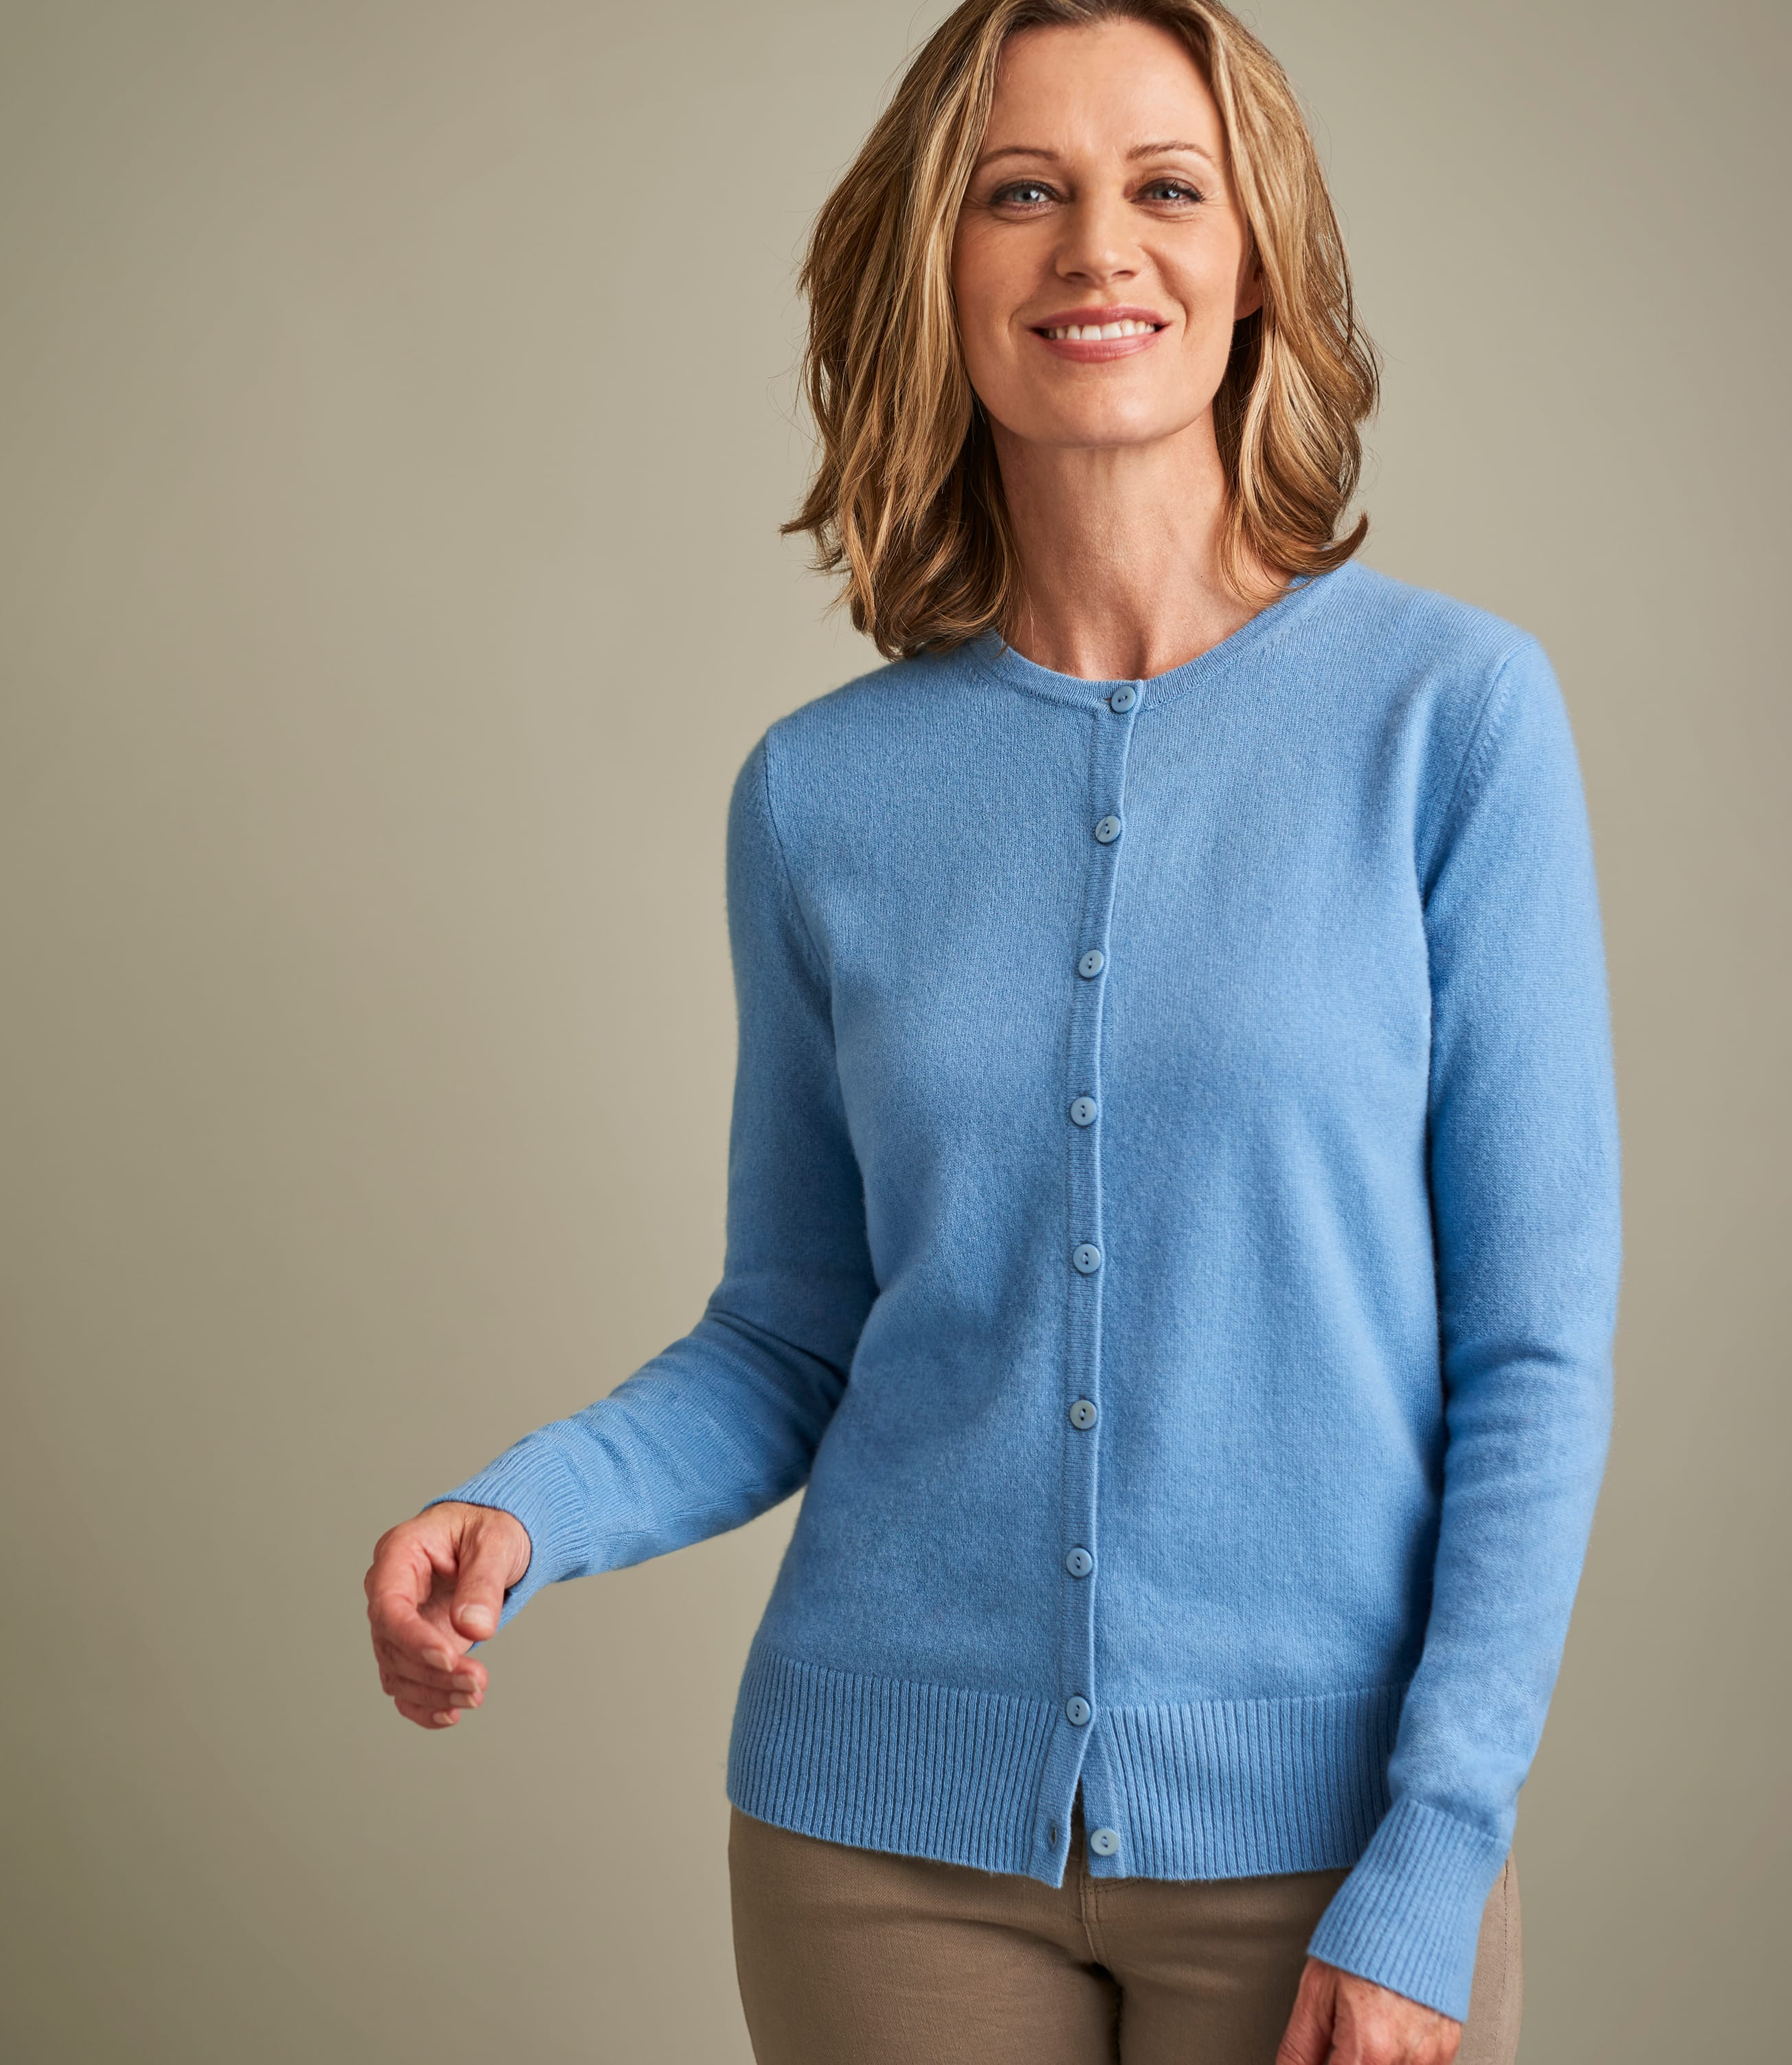 Luxurious Cashmere Crew Neck Cardigan